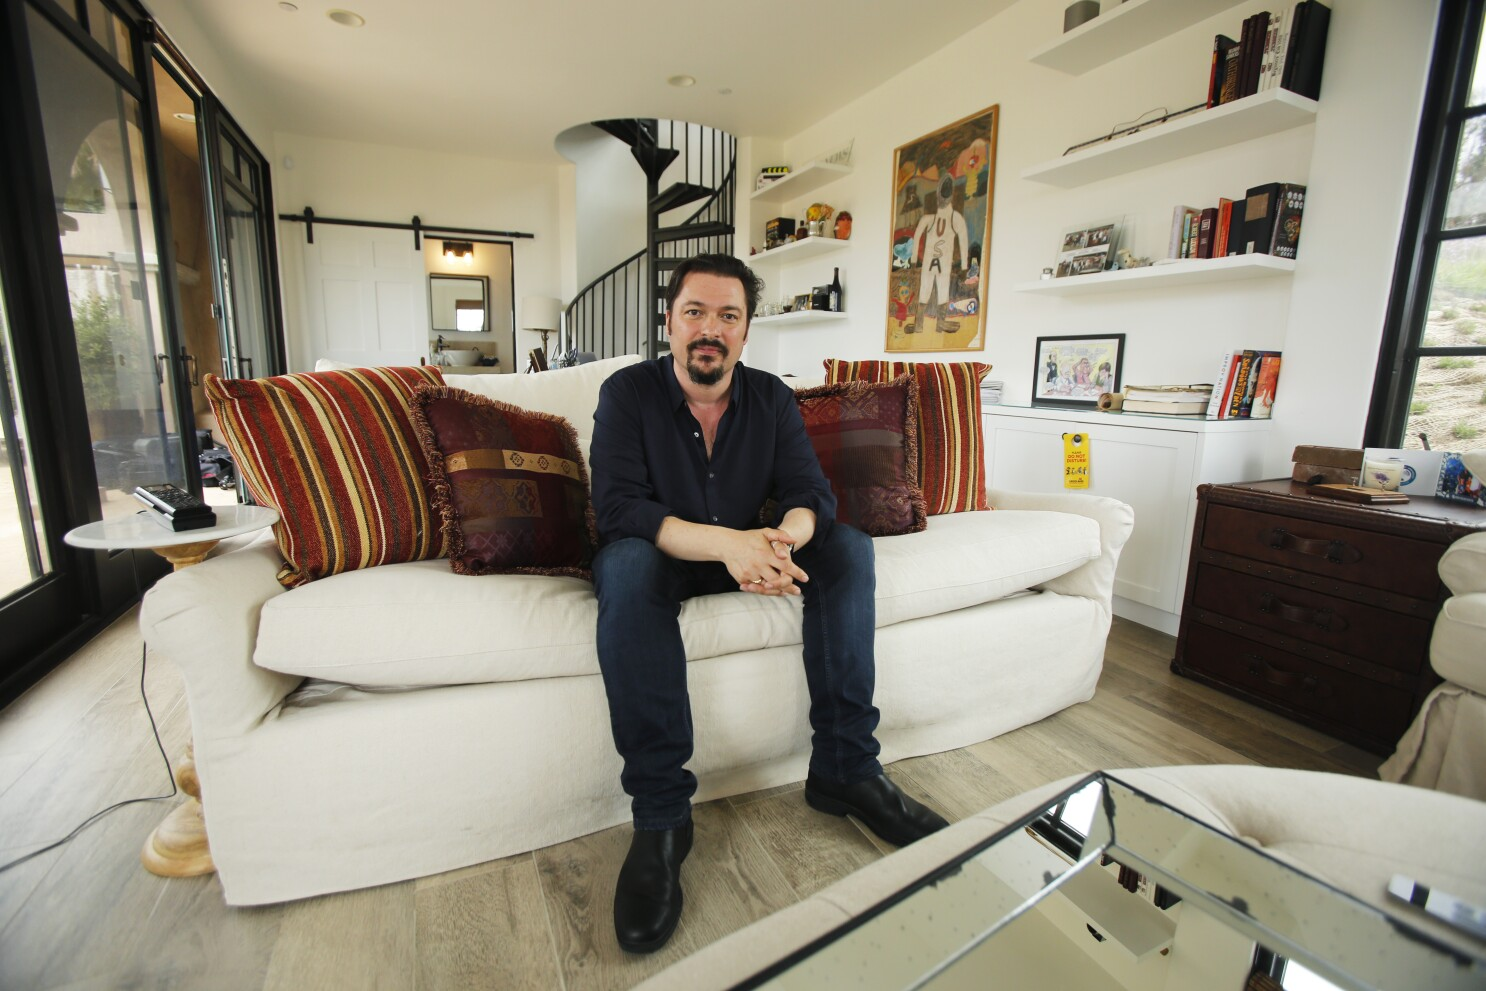 Screenwriter James Vanderbilt's home office leaves room for play